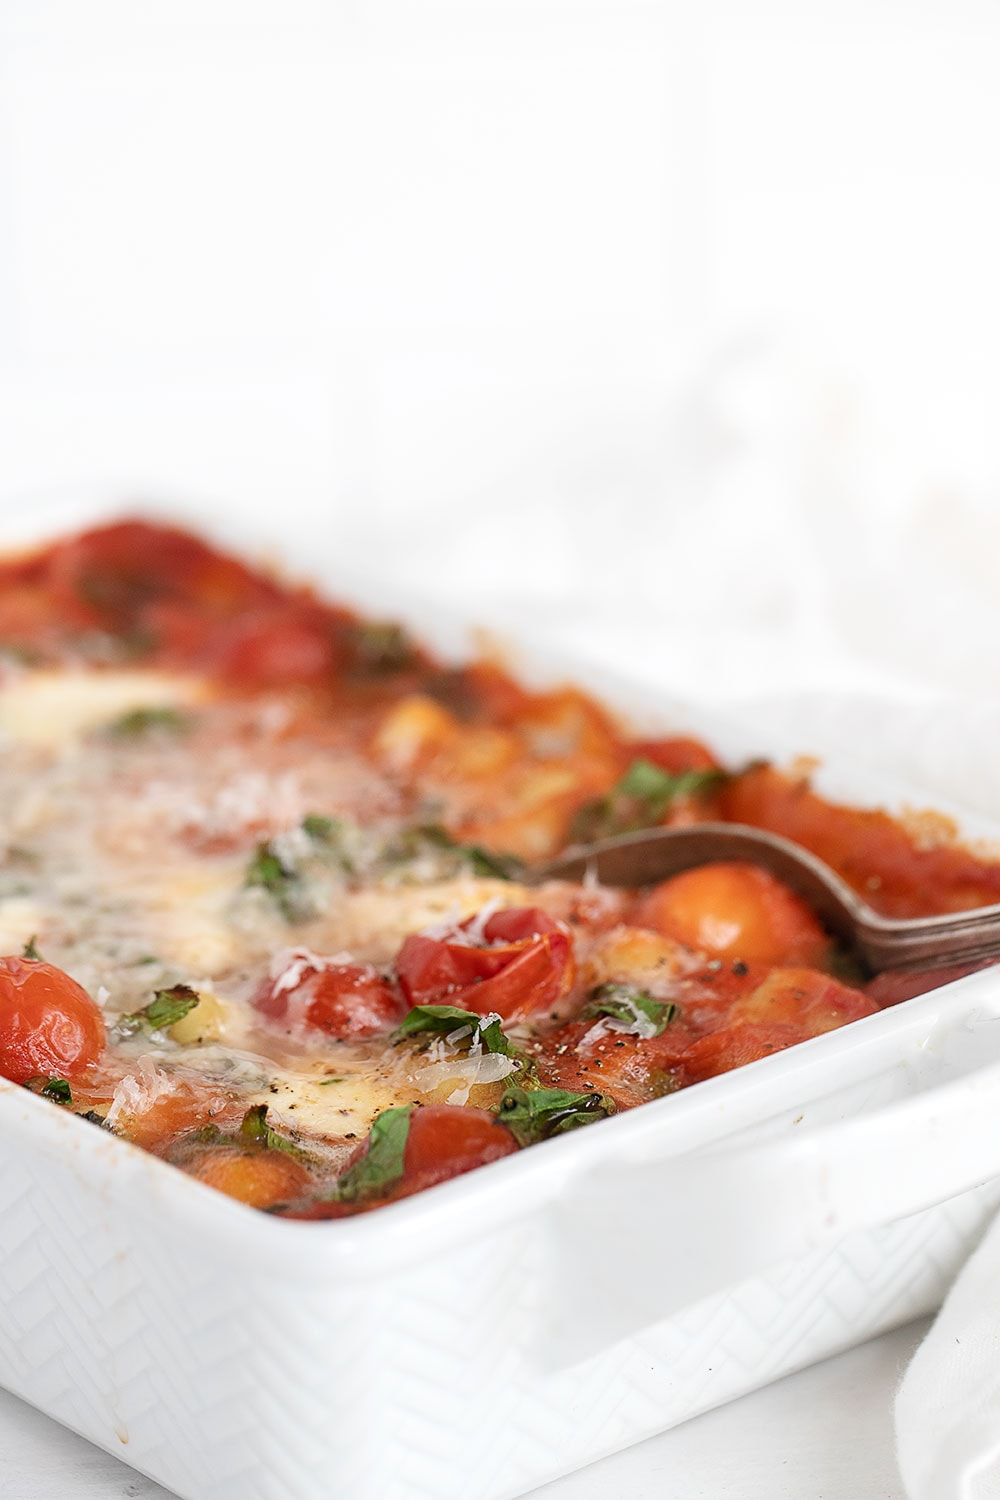 baked gnocchi and tomatoes in baking dish